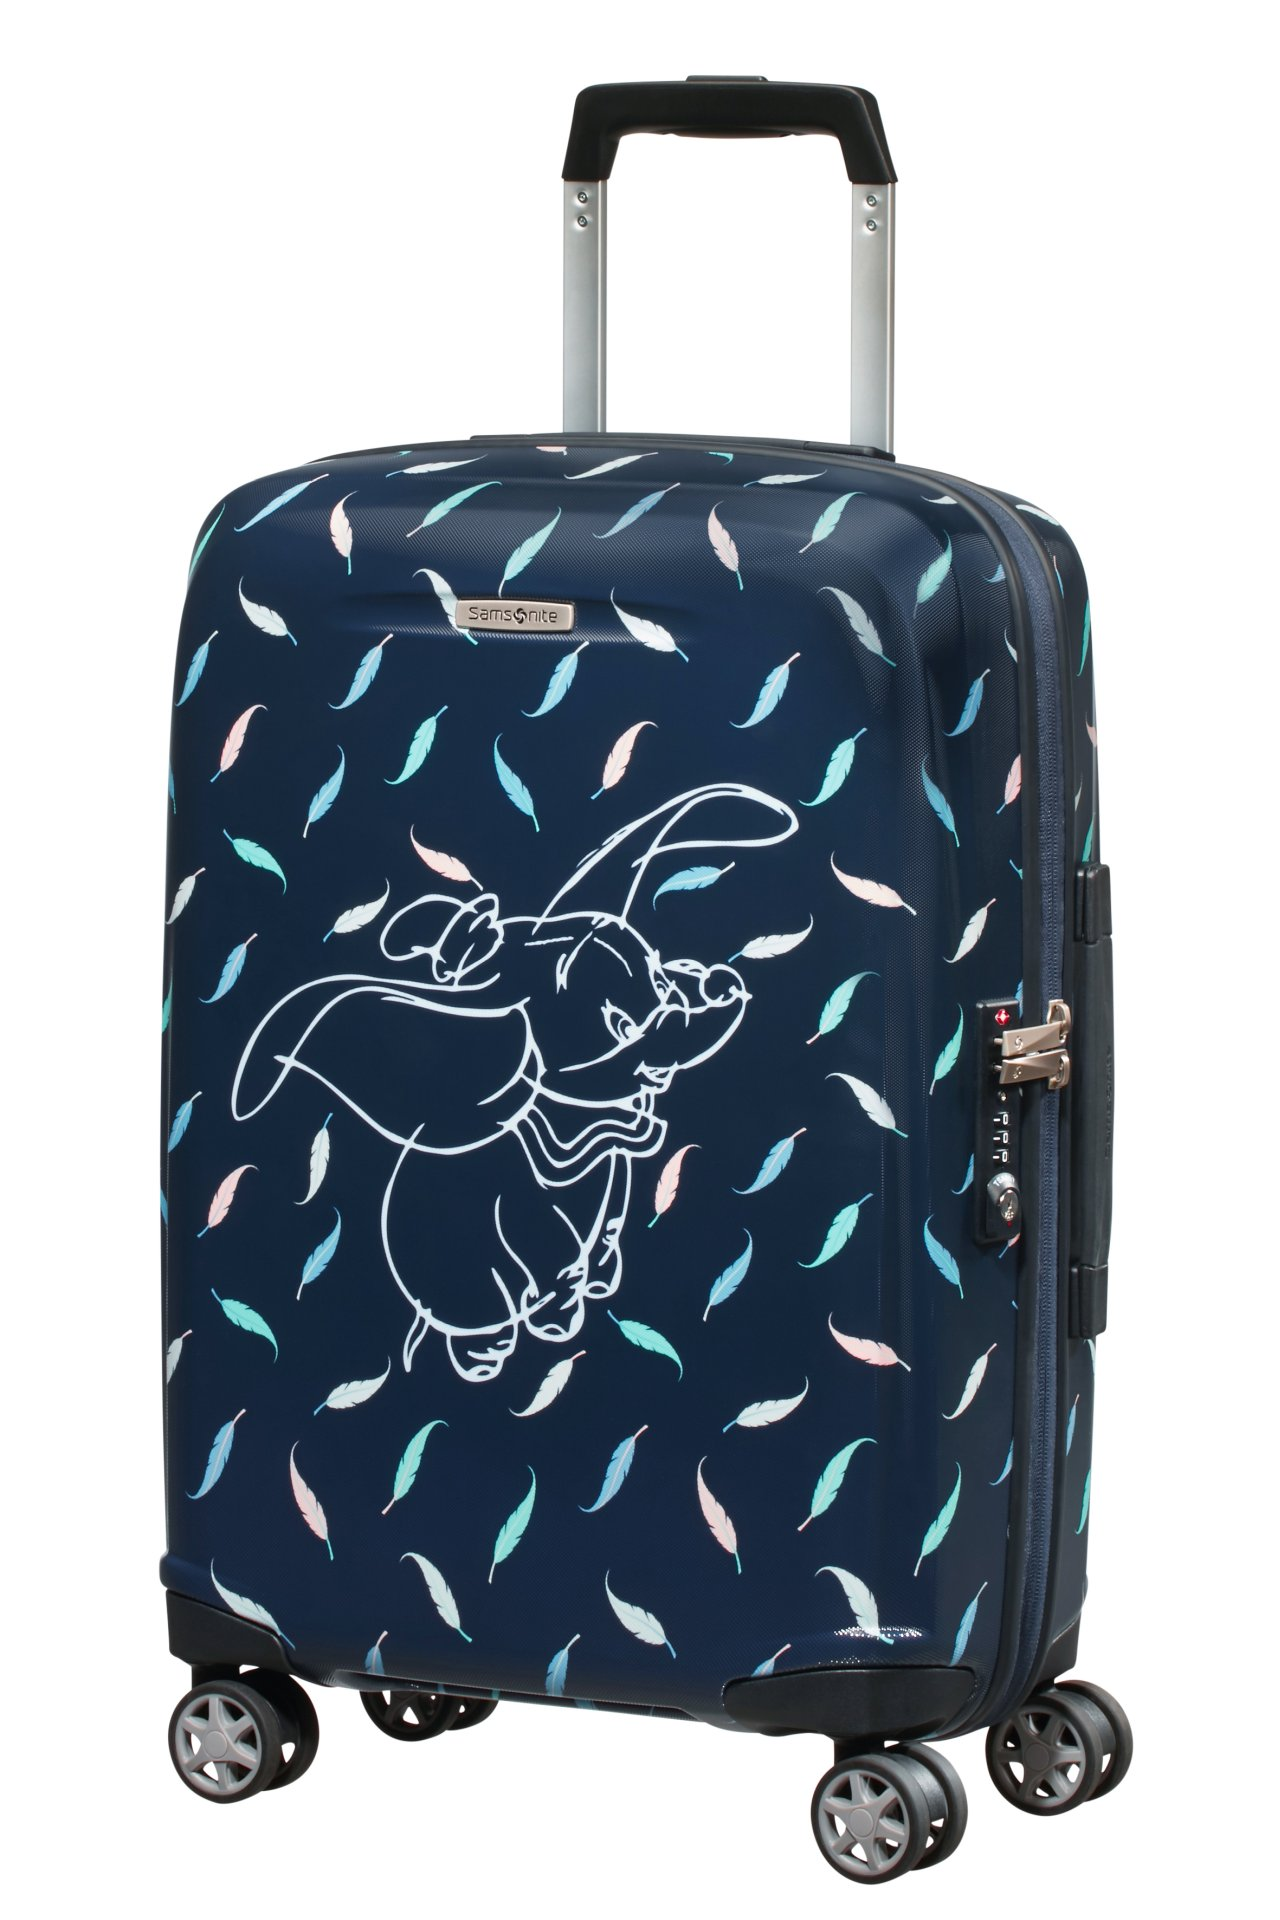 Fantastic Samsonite Disney Forever Dumbo Feathers Spinner Buy At Caraccident5 Cool Chair Designs And Ideas Caraccident5Info